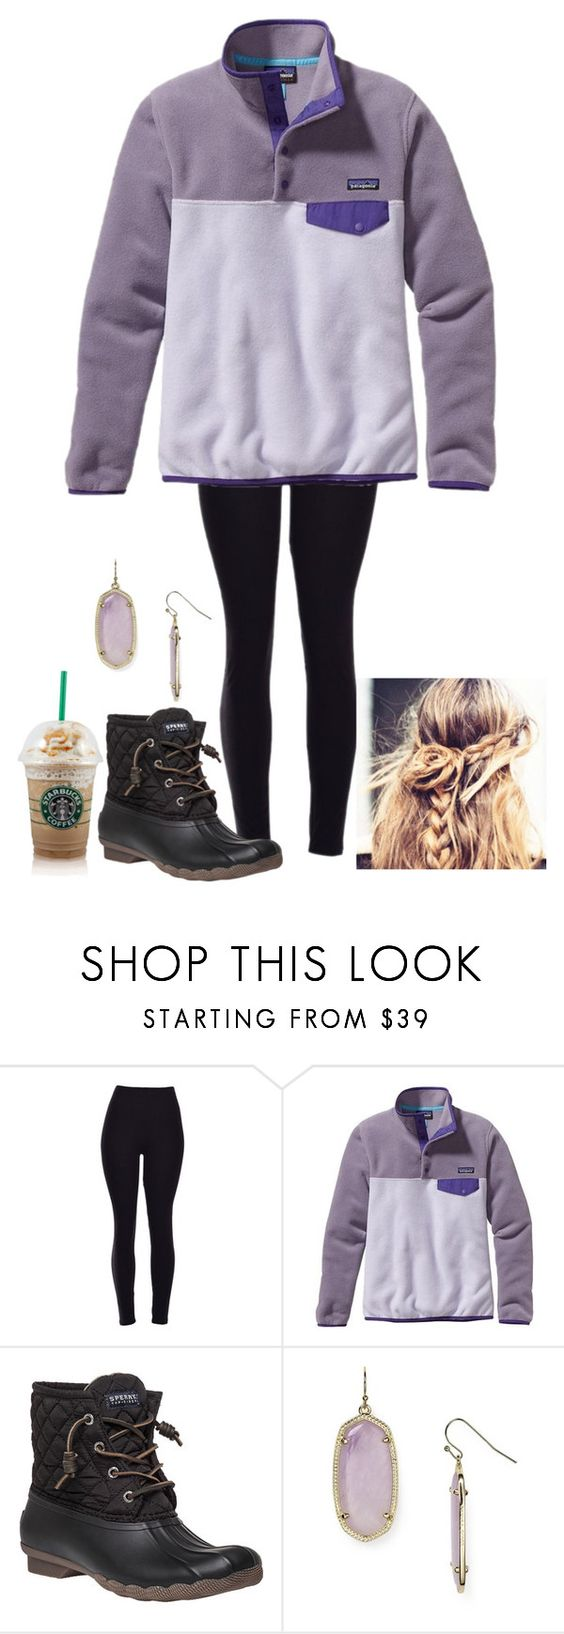 """Patagonia"" by madisonelizabethmcguire ❤ liked on Polyvore featuring Patagonia, Sperry Top-Sider, Kendra Scott, women's clothing, women's fashion, women, female, woman, misses and juniors"